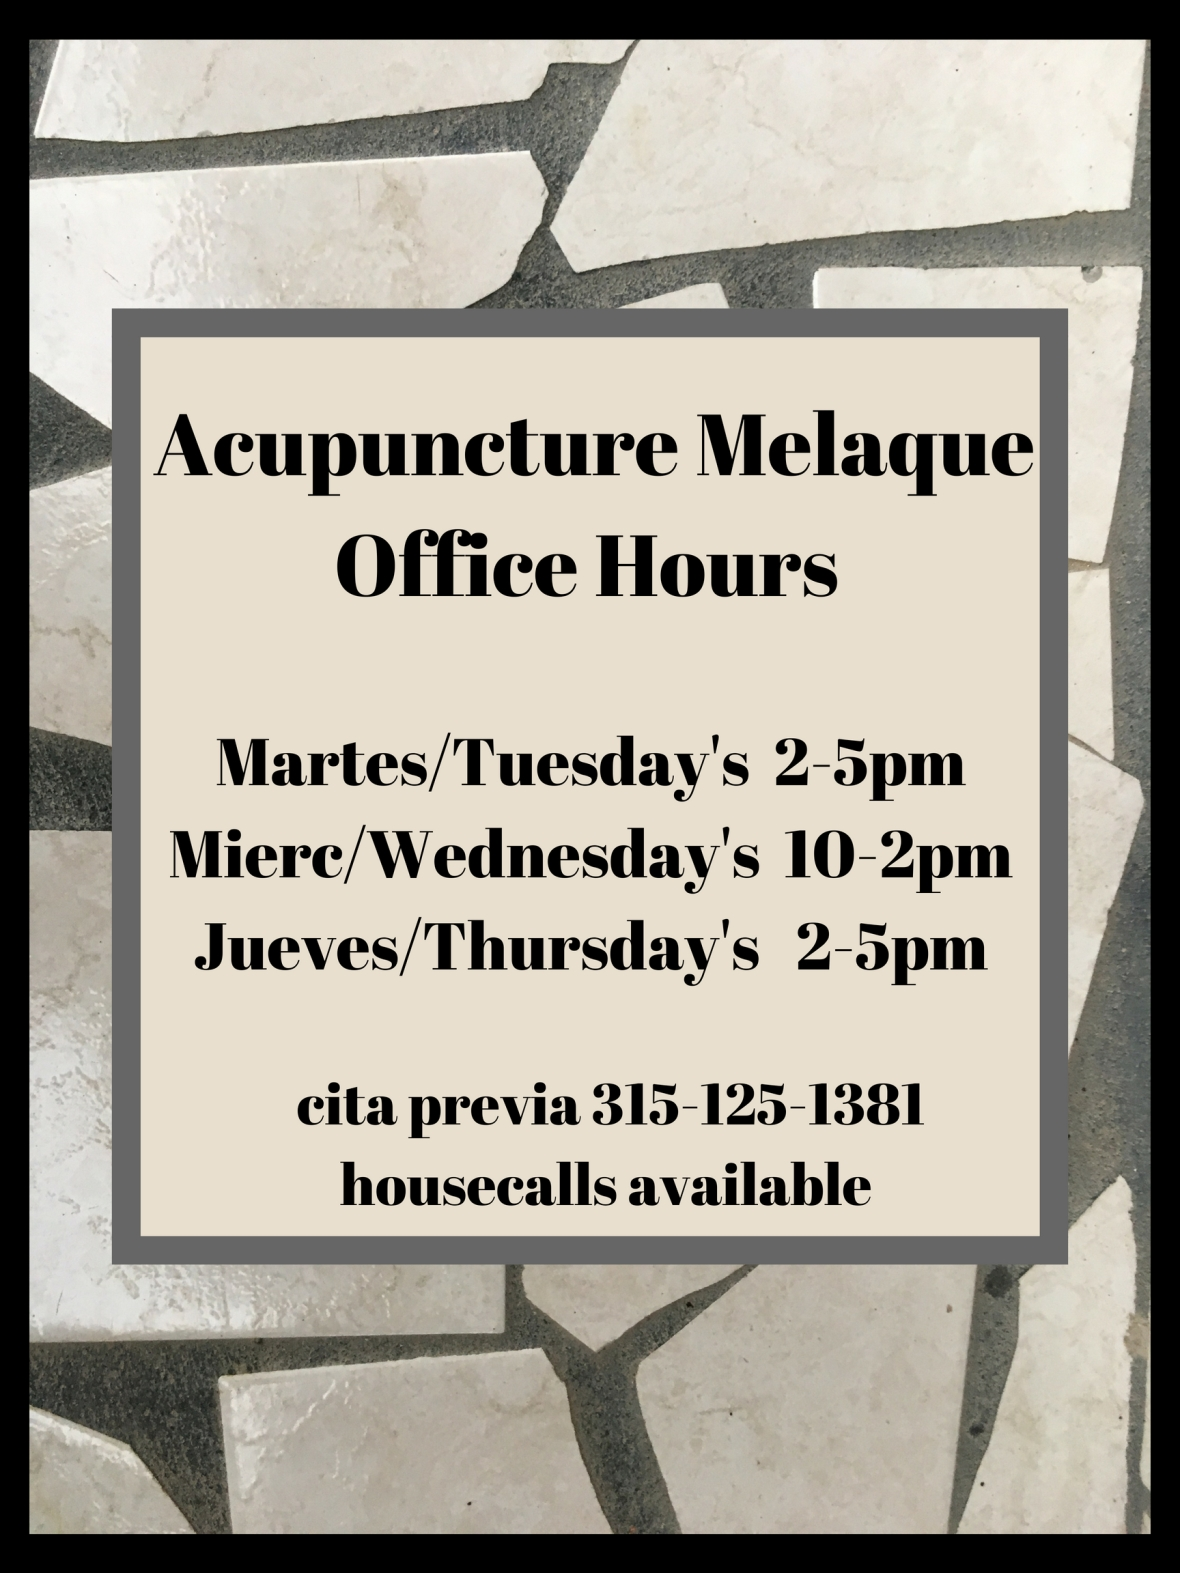 Acupuncture Signt corrected hours.jpg